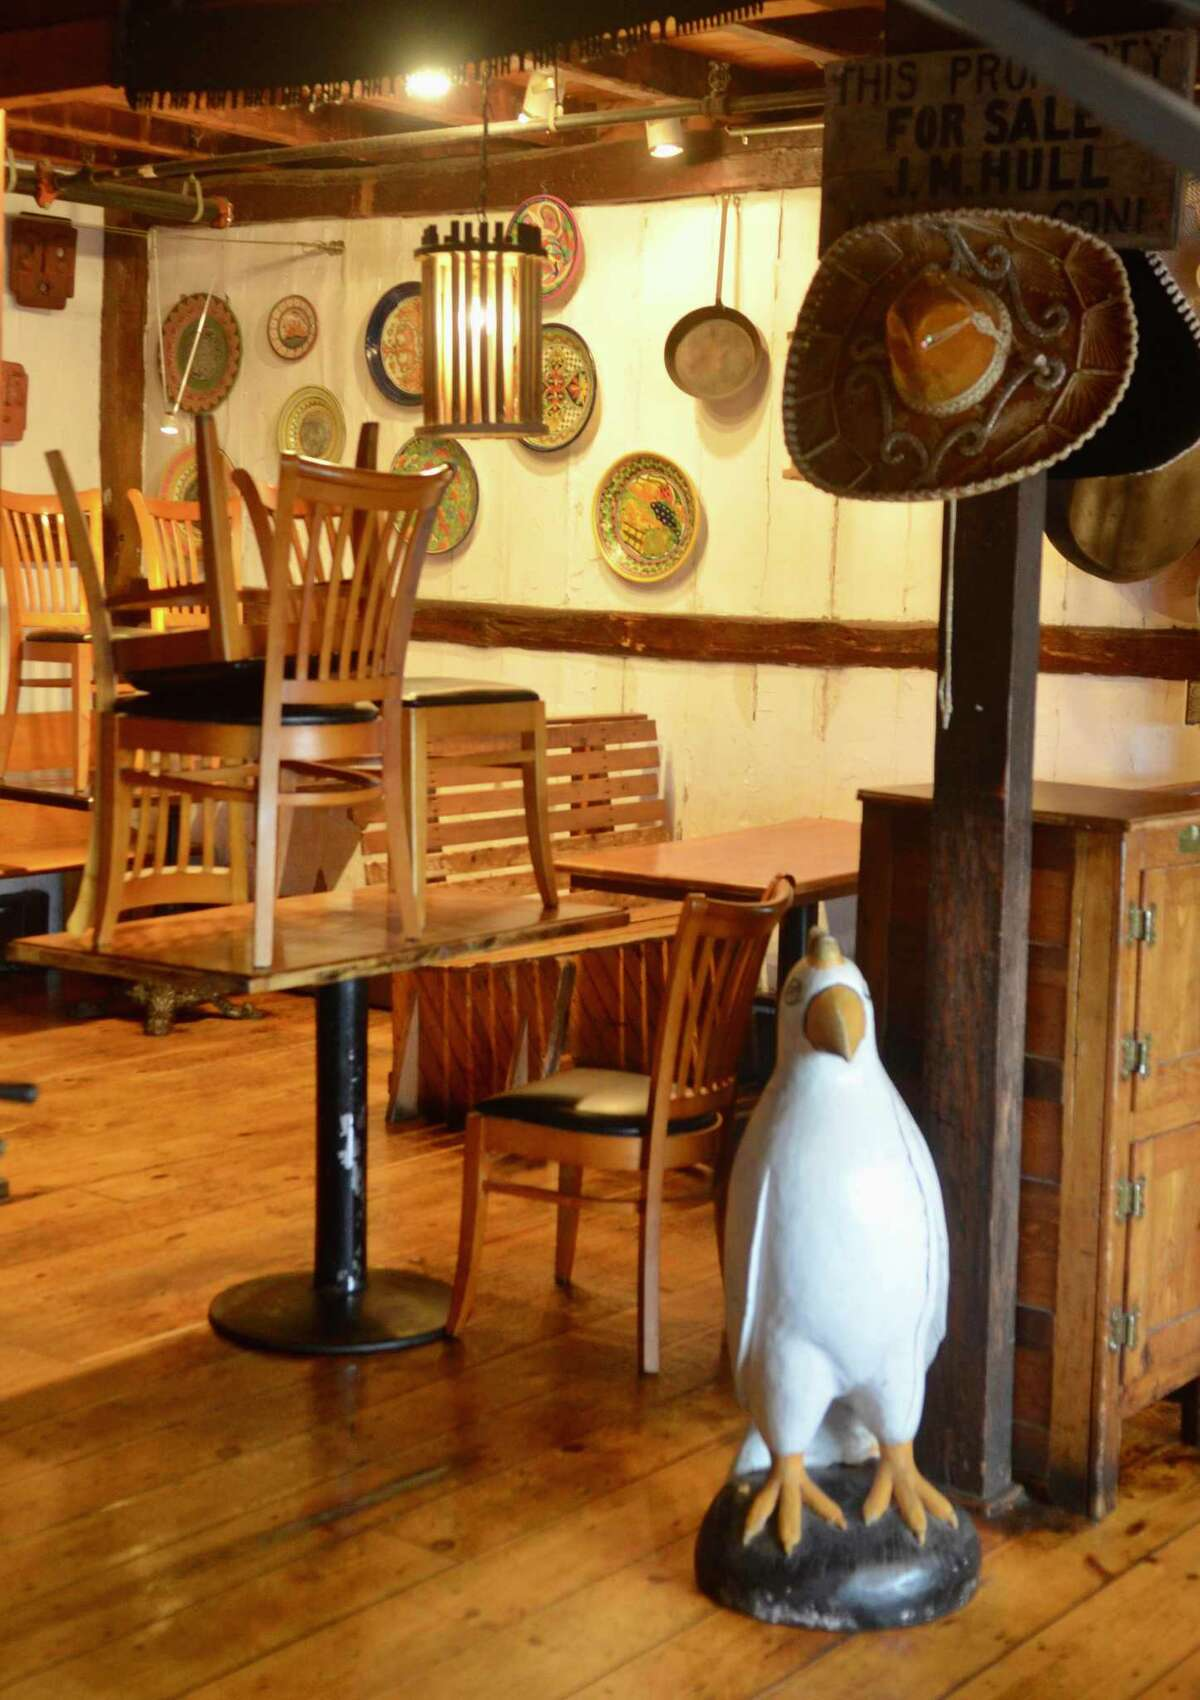 Inside Cuckoo's Nest, a Mexican eatery in Old Saybrook. Cuckoo's Nest, Old Saybrook Statewide and Middlesex County Geronimo Tequila Bar & Southwest Grill, New Haven, Fairfield Statewide Runner-up and New Haven County Hacienda Don Manuel, Brookfield Fairfield County